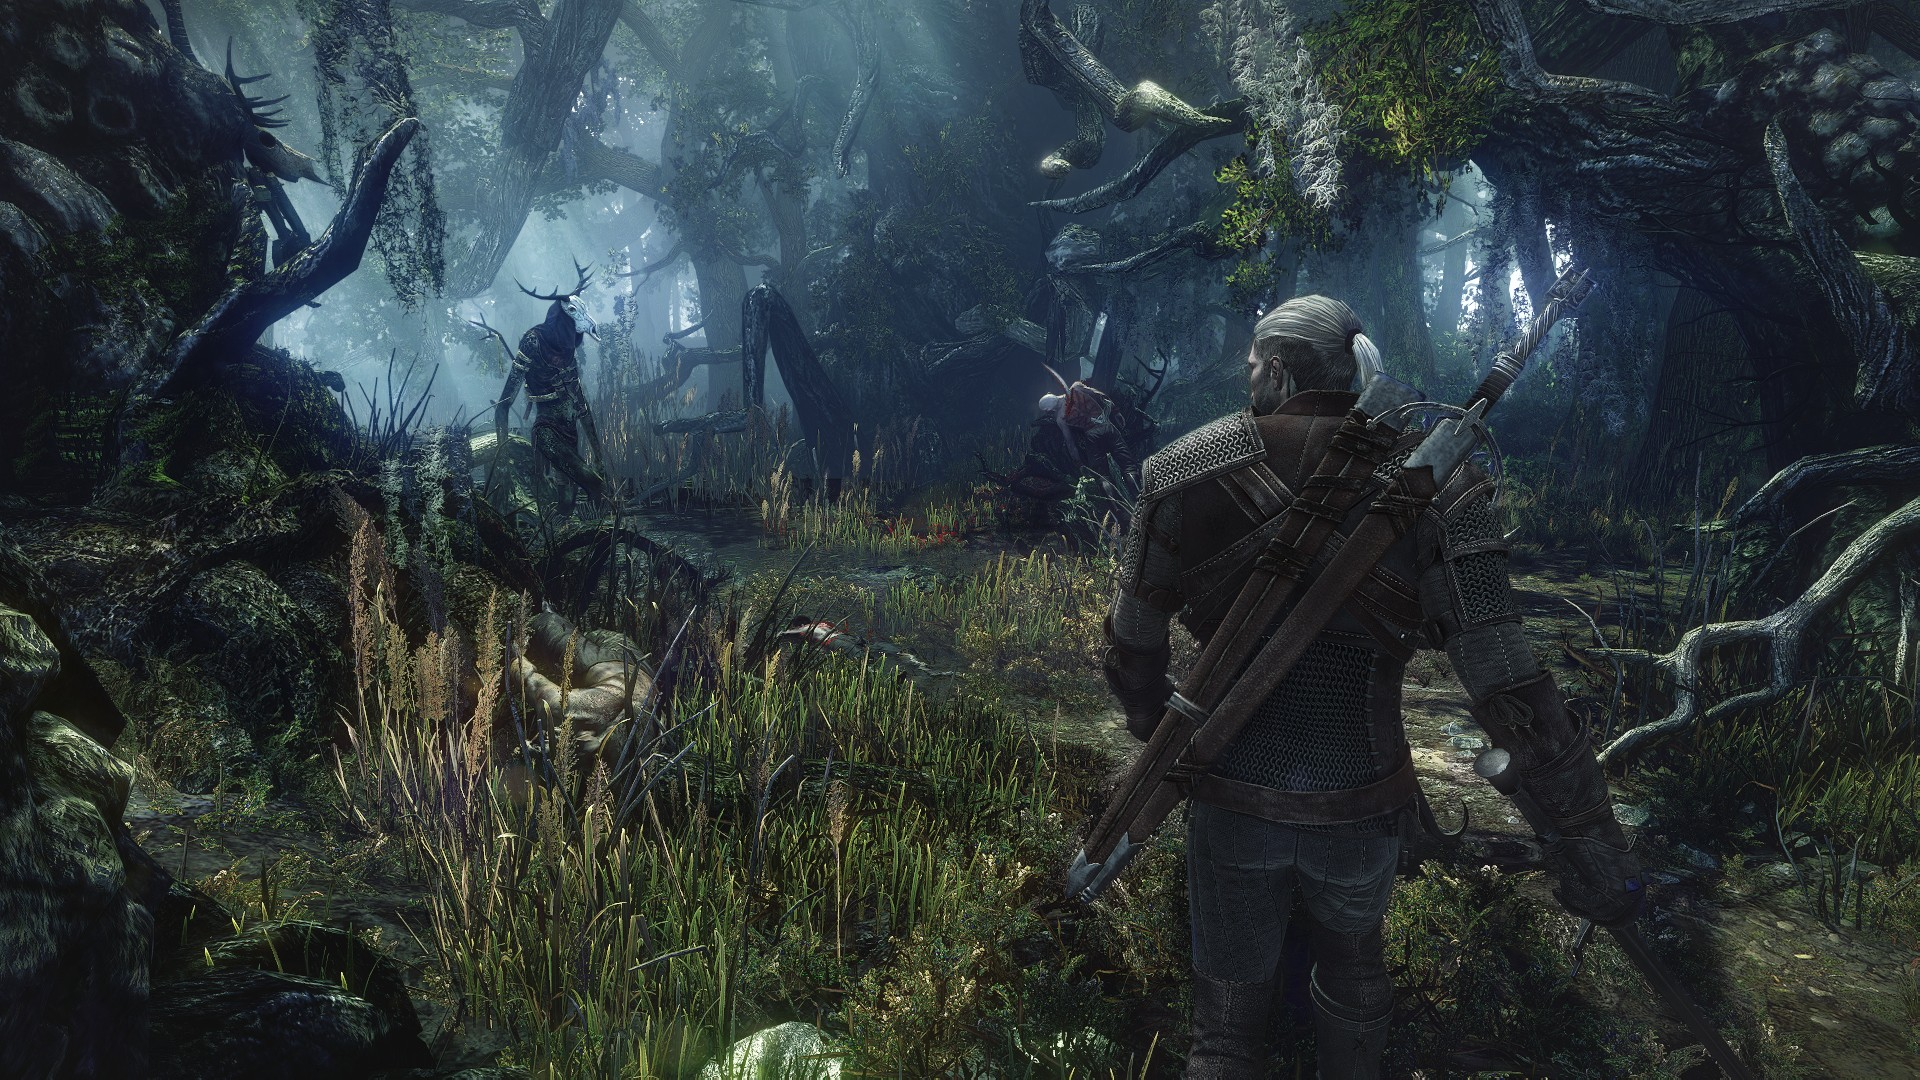 witcher3forest 1